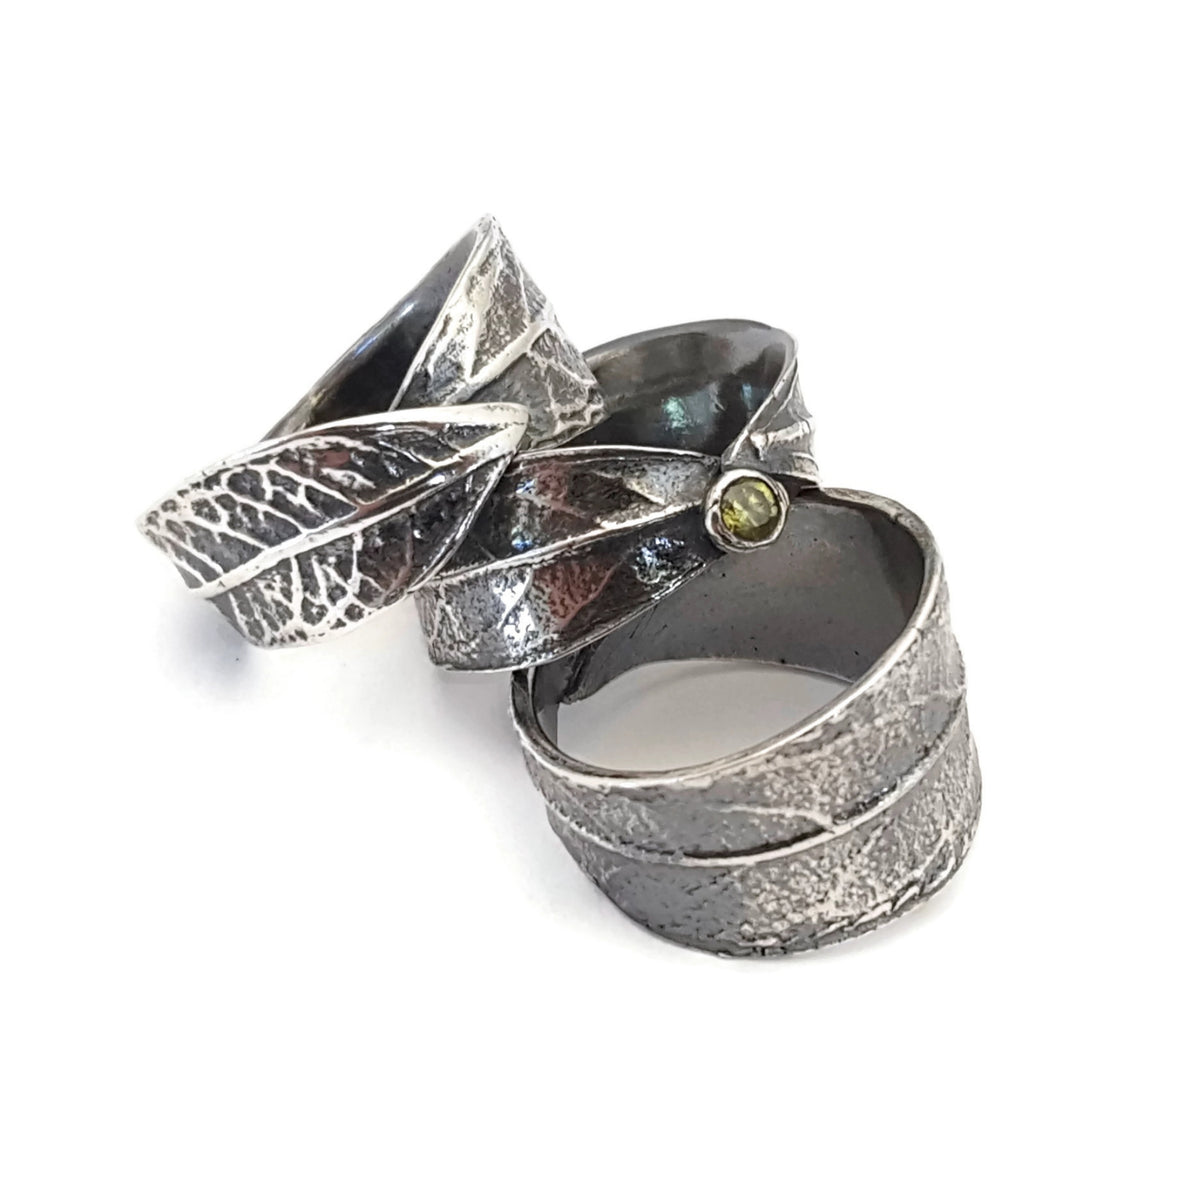 Three different styles of fine silver wrap rings made from ArtClay Silver metal clay and textured using molds made from leaves.